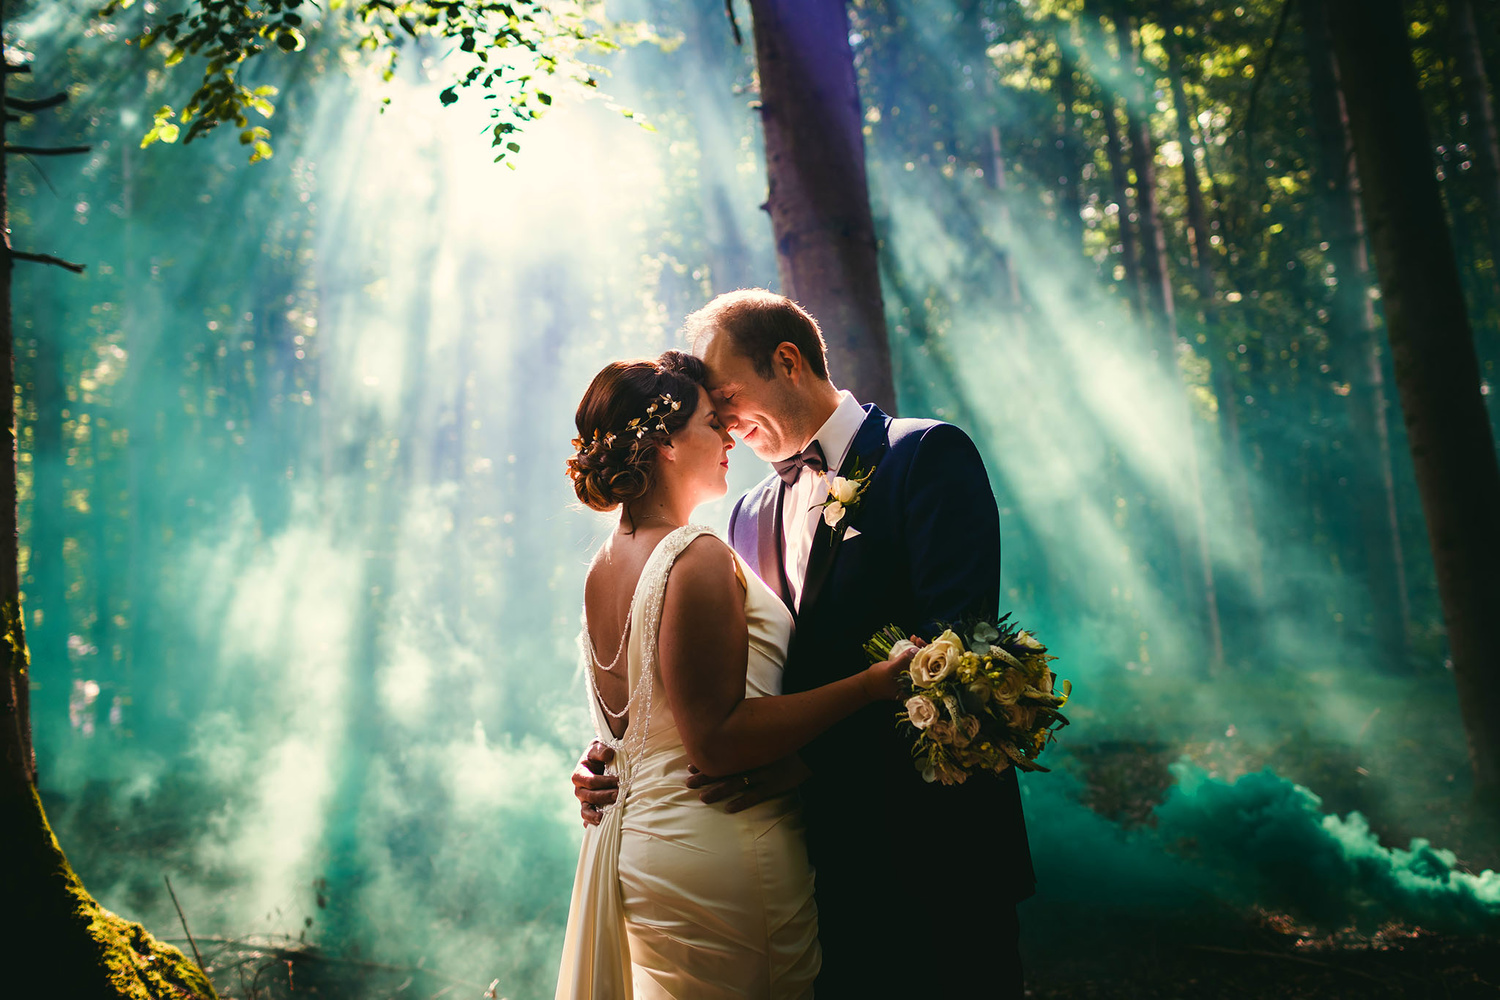 Photograph of a bride and groom in a forest.